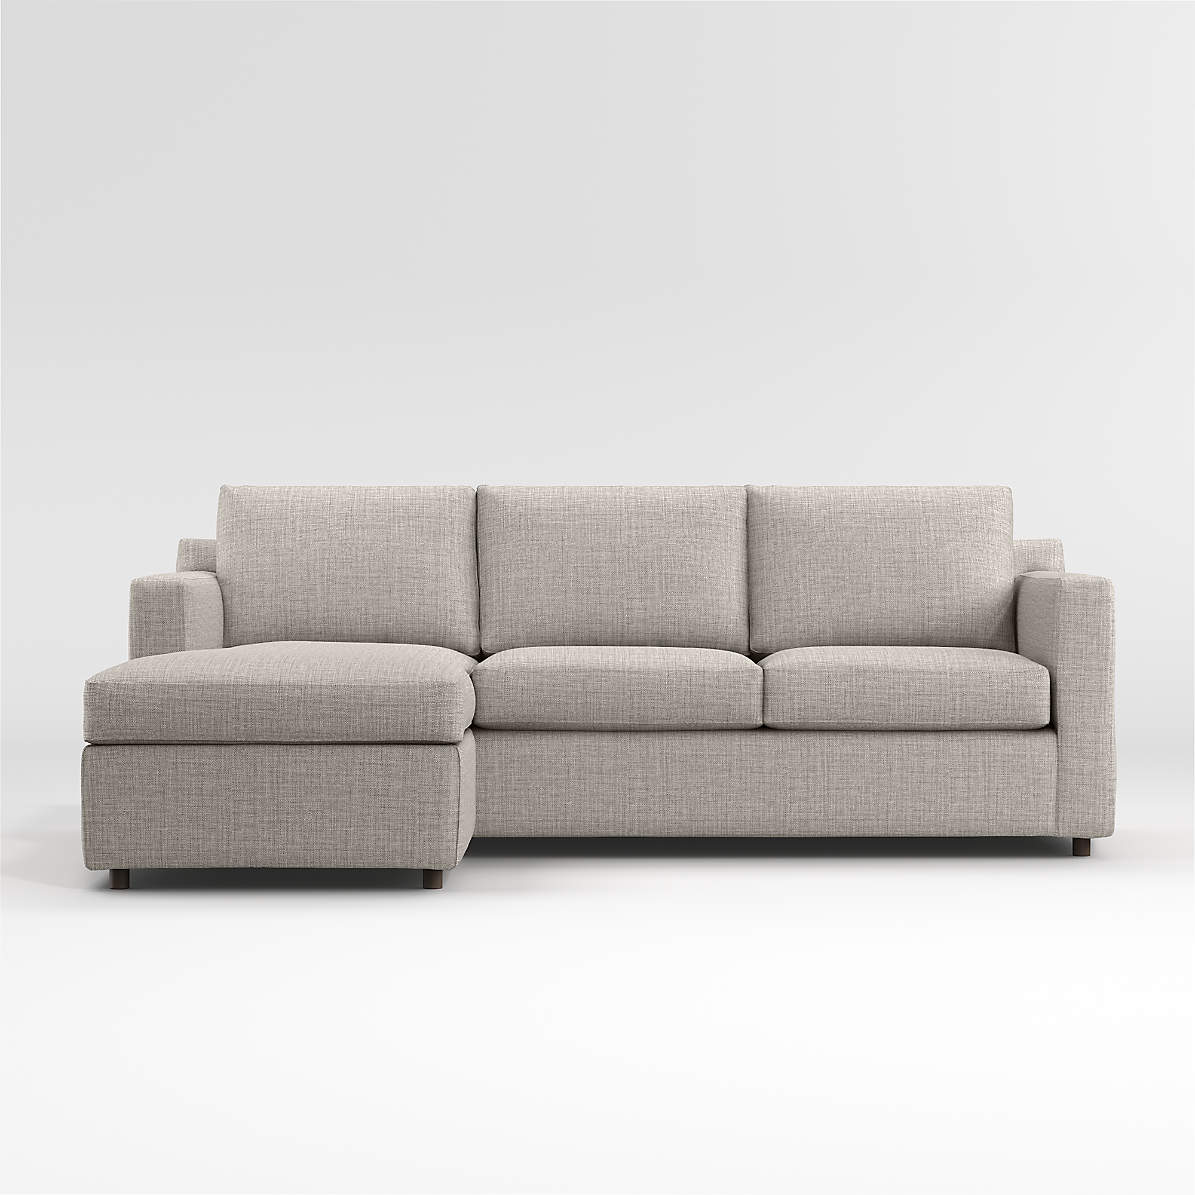 Barrett 3 Seat Queen Reversible Sleeper Sofa With Reviews Crate And Barrel